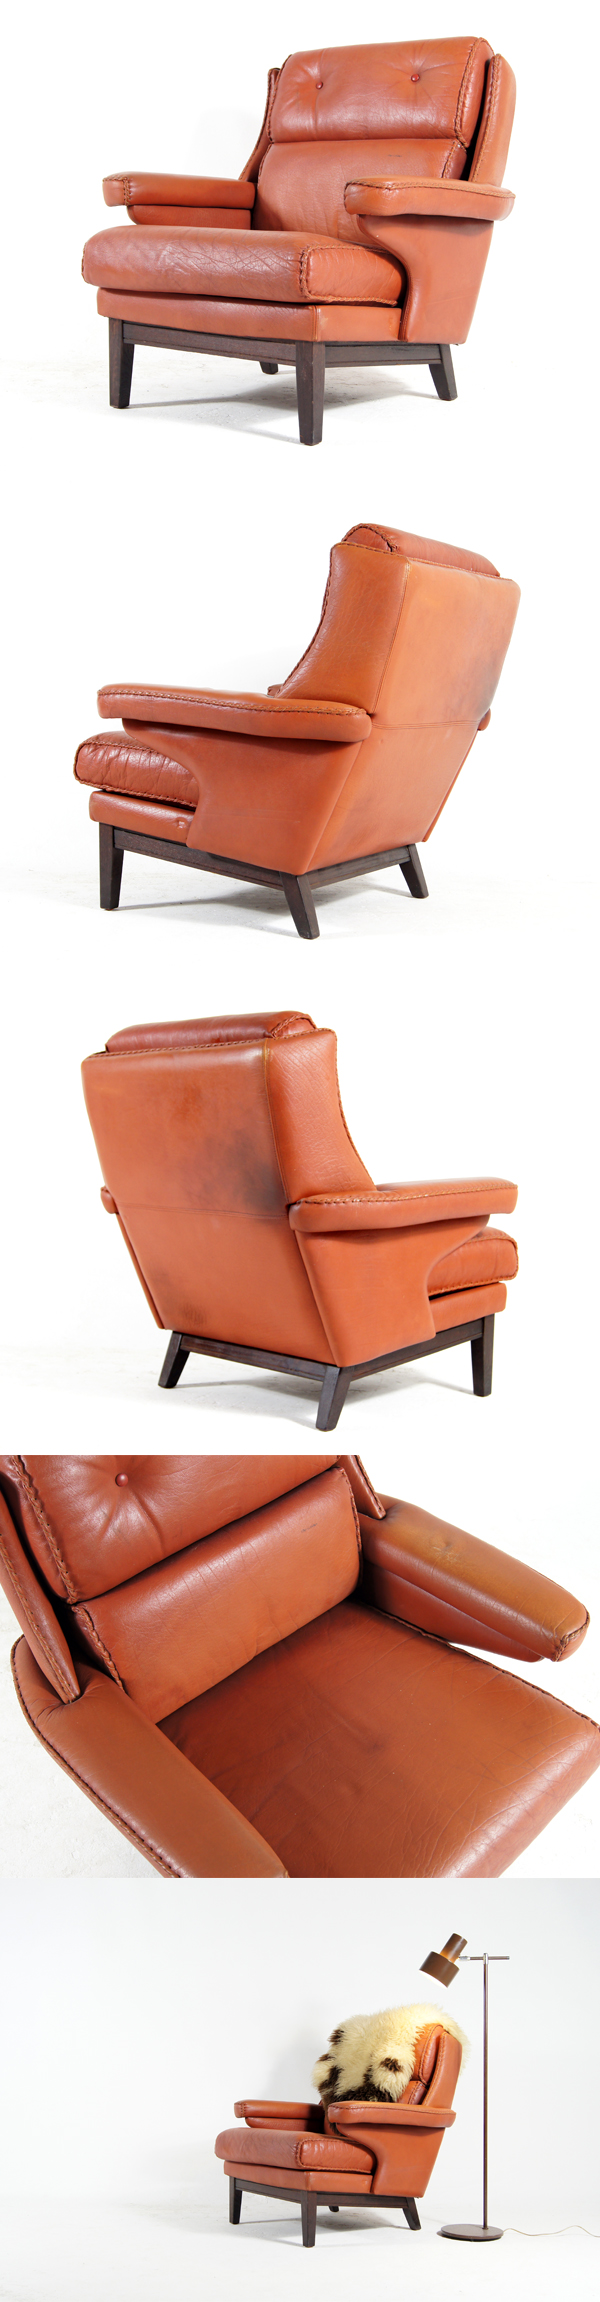 Retro vintage red leather rosewood armchair lounge chair for Designer chairs from the 60s